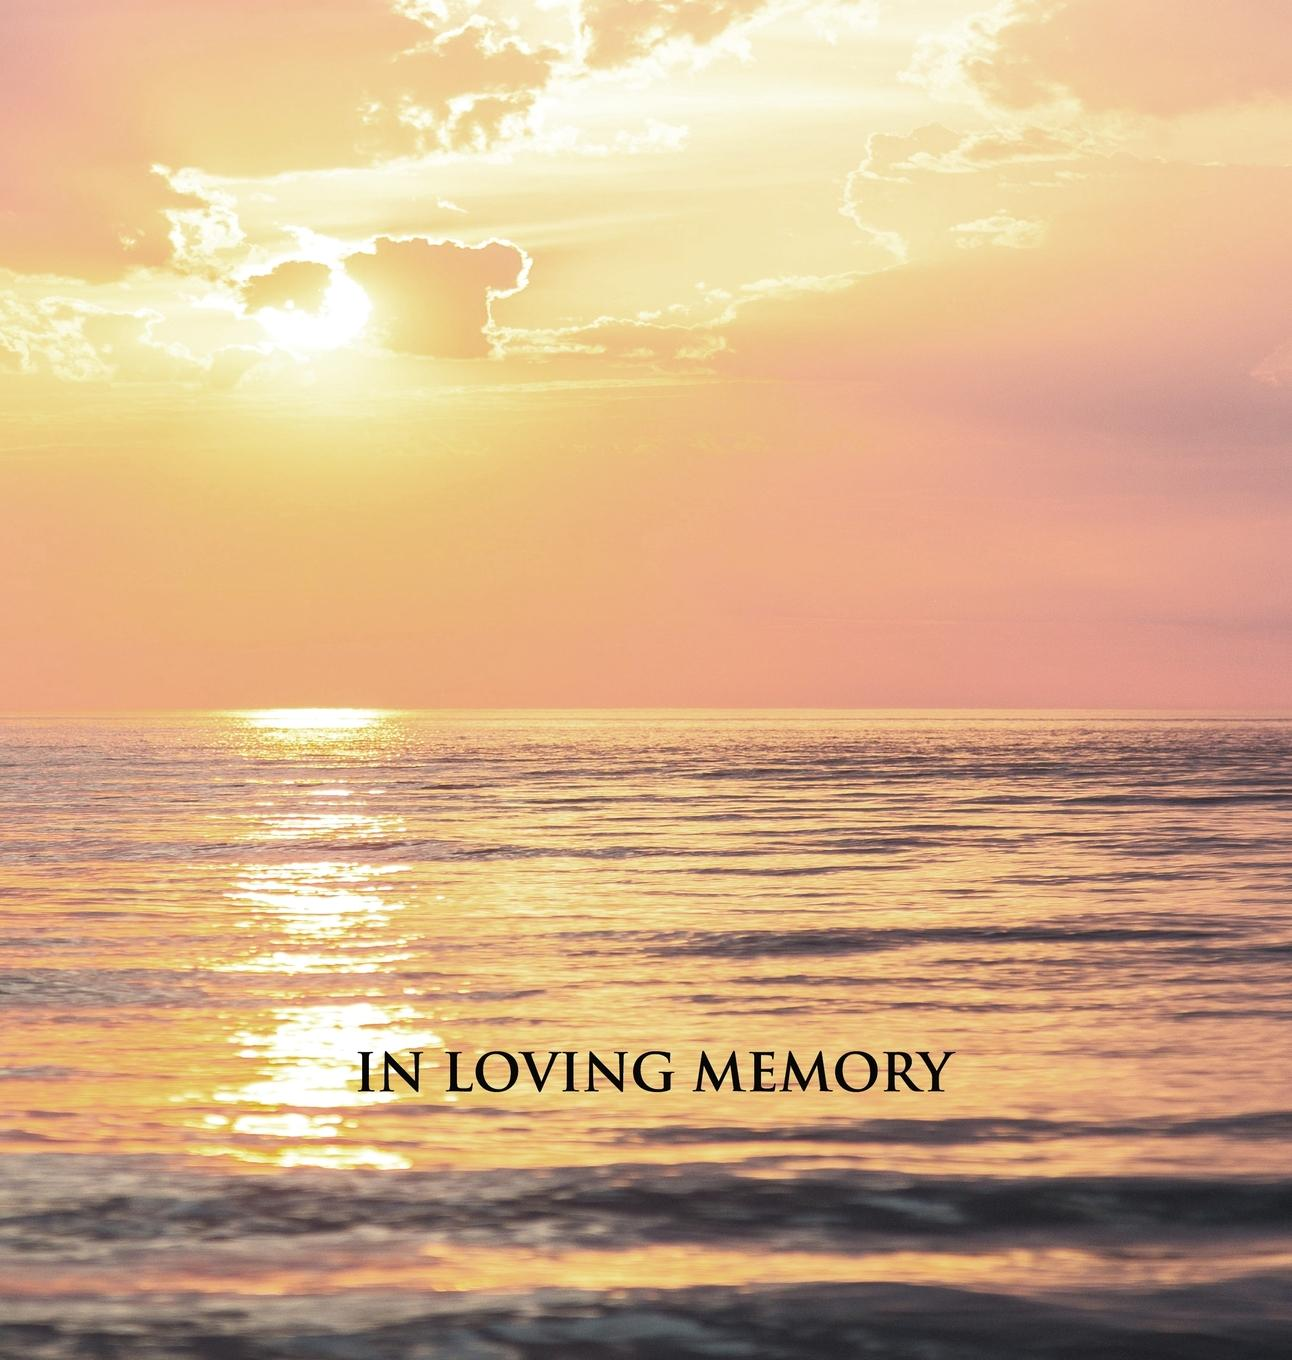 In Loving Memory Funeral Guest Book, Memorial Guest Book, Condolence Book, Remembrance Book for Funerals or Wake, Memorial Service Guest Book : A Celebration of Life and a Lasting Keepsake for the Family. Hard Cover with a Gloss Finish. Calm Sea Sunset.